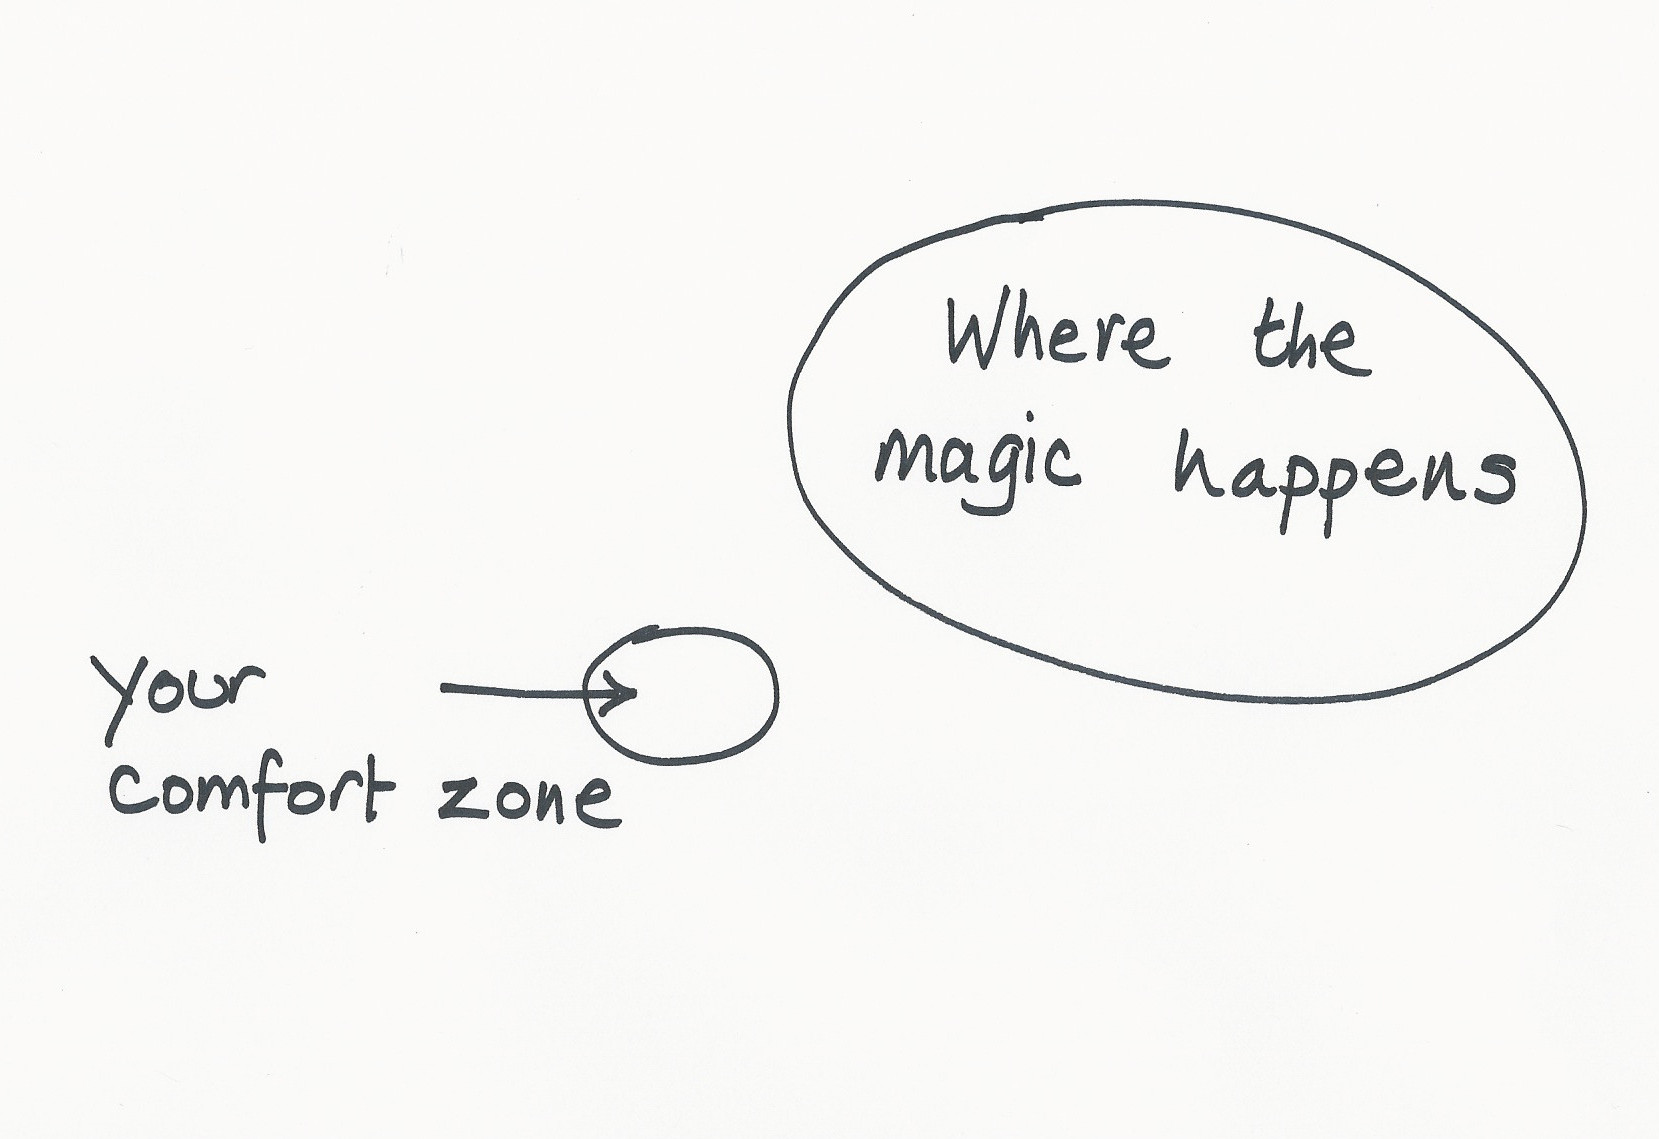 3 Incorrect Assumptions About Leaving Your Comfort Zone